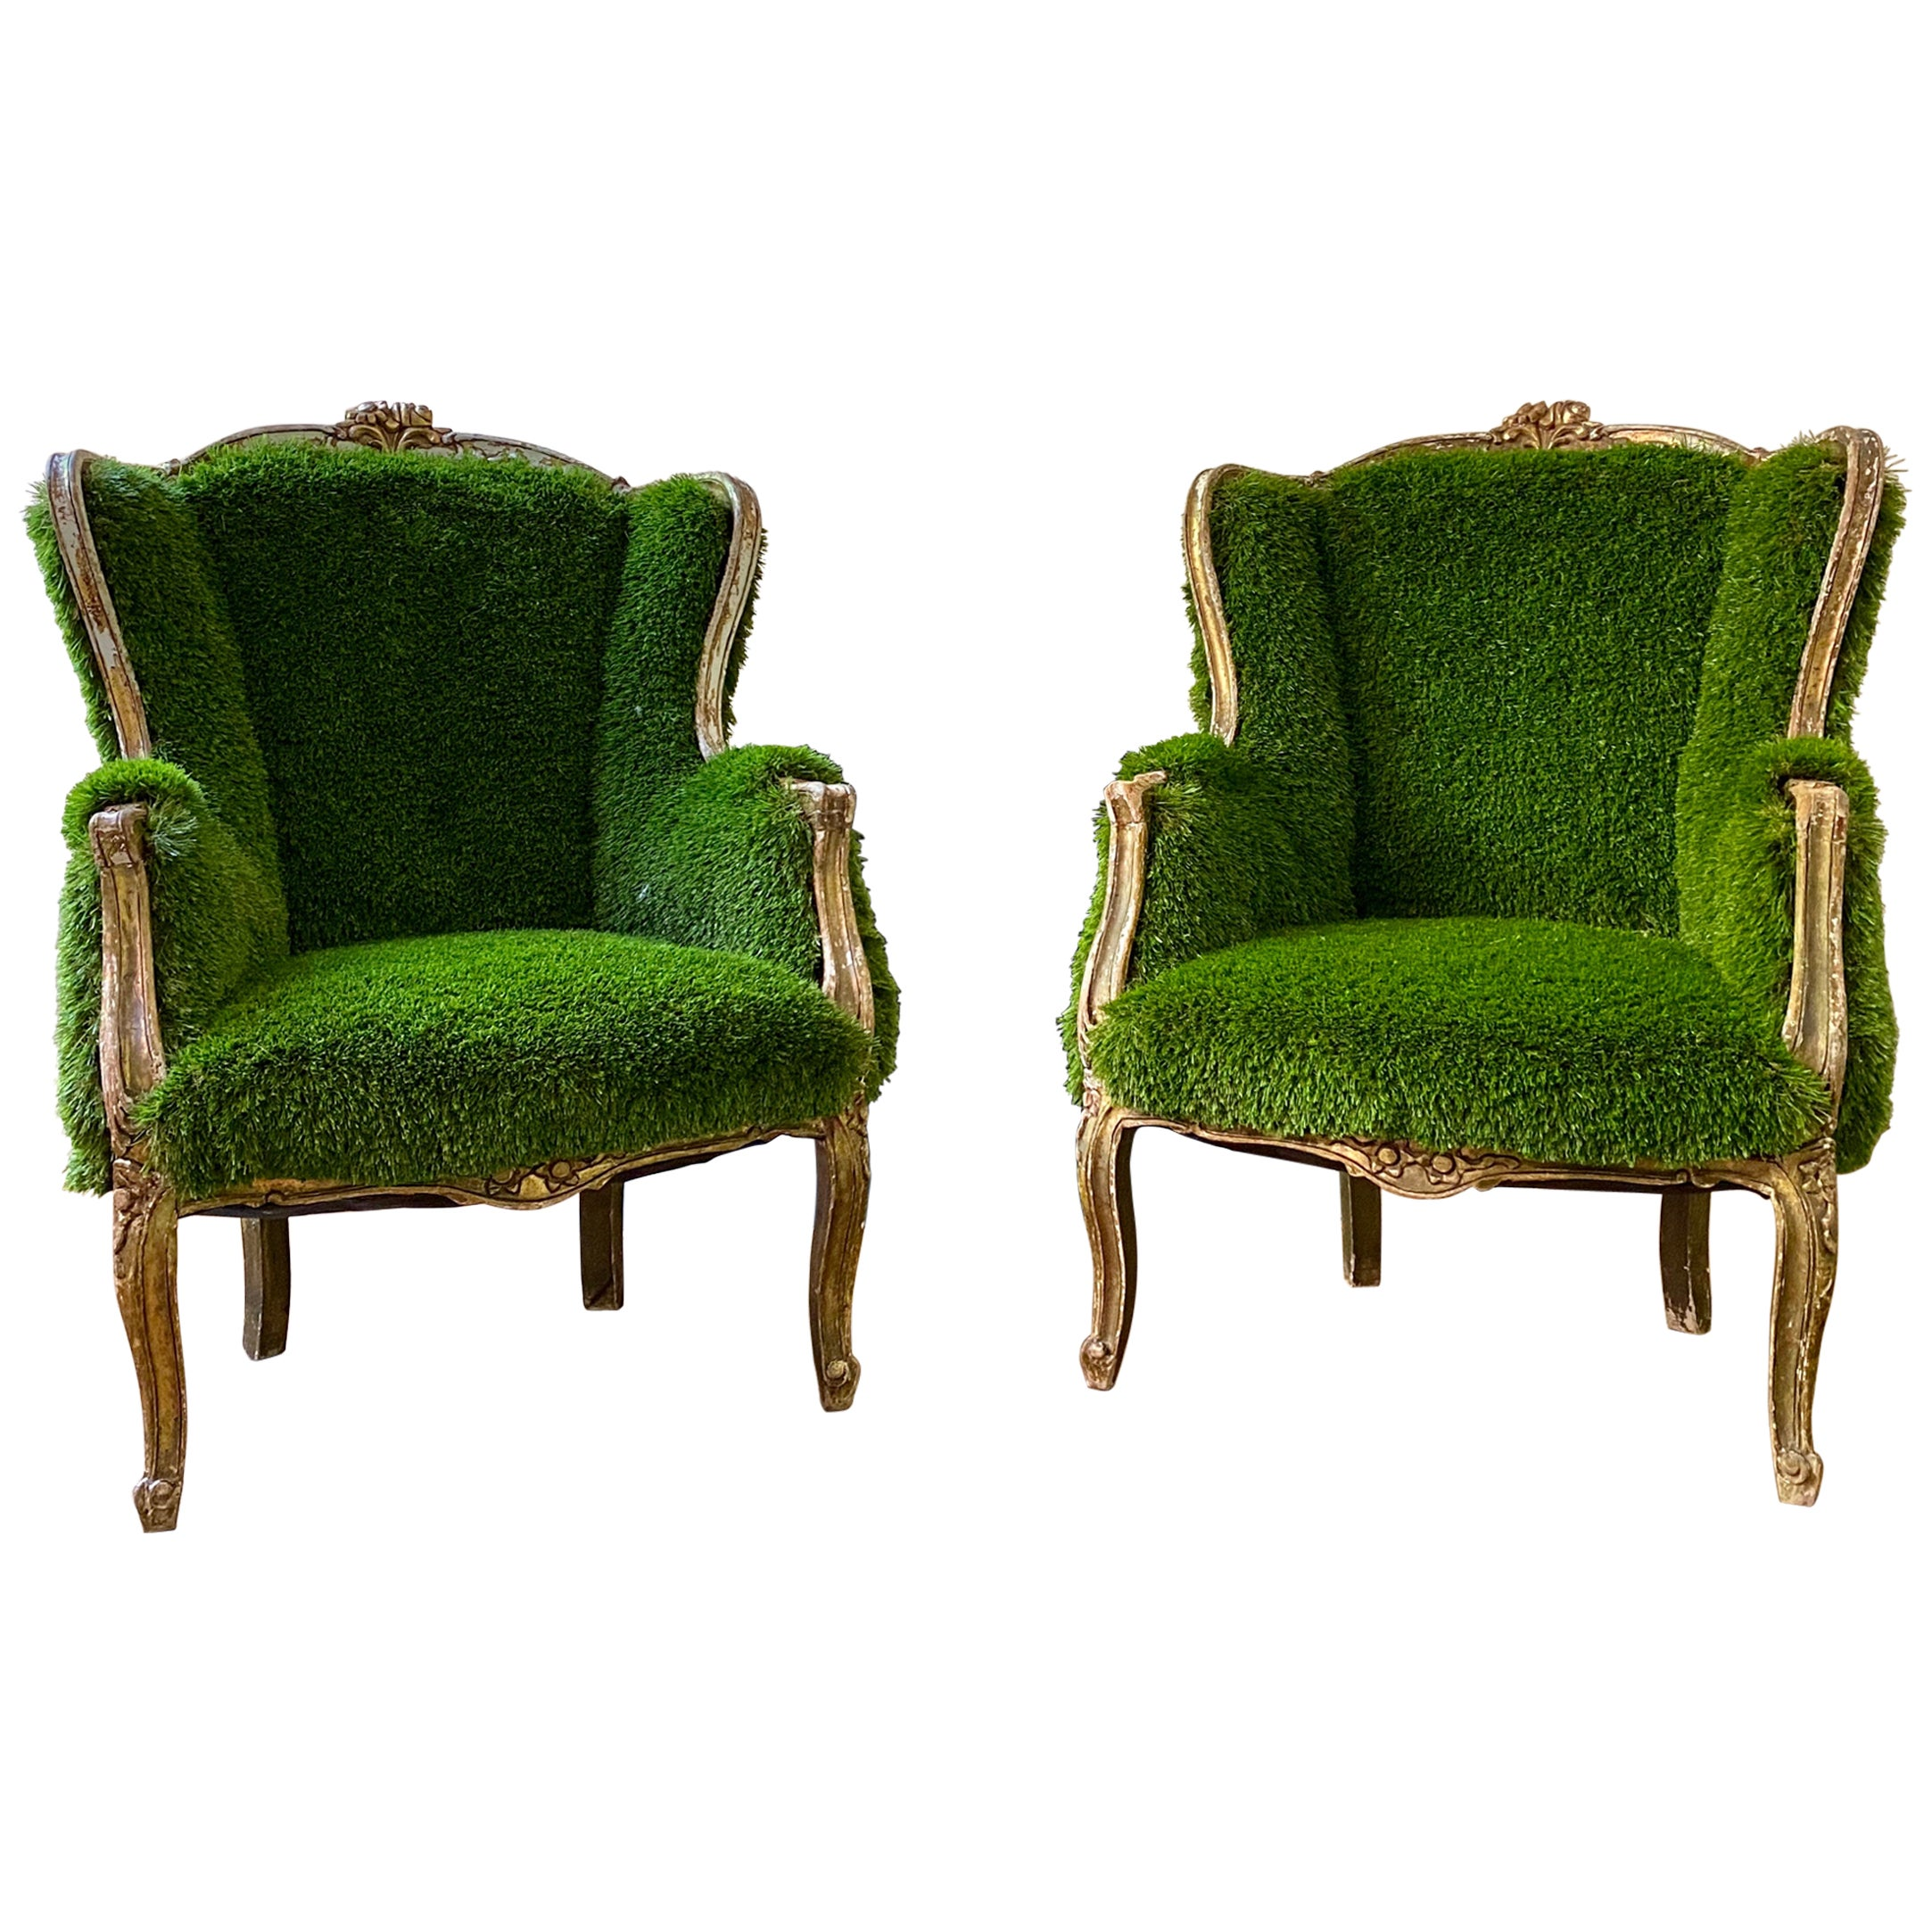 Pair of French Bergère Louis XV Style Chairs Re-Upholstered in Faux Grass